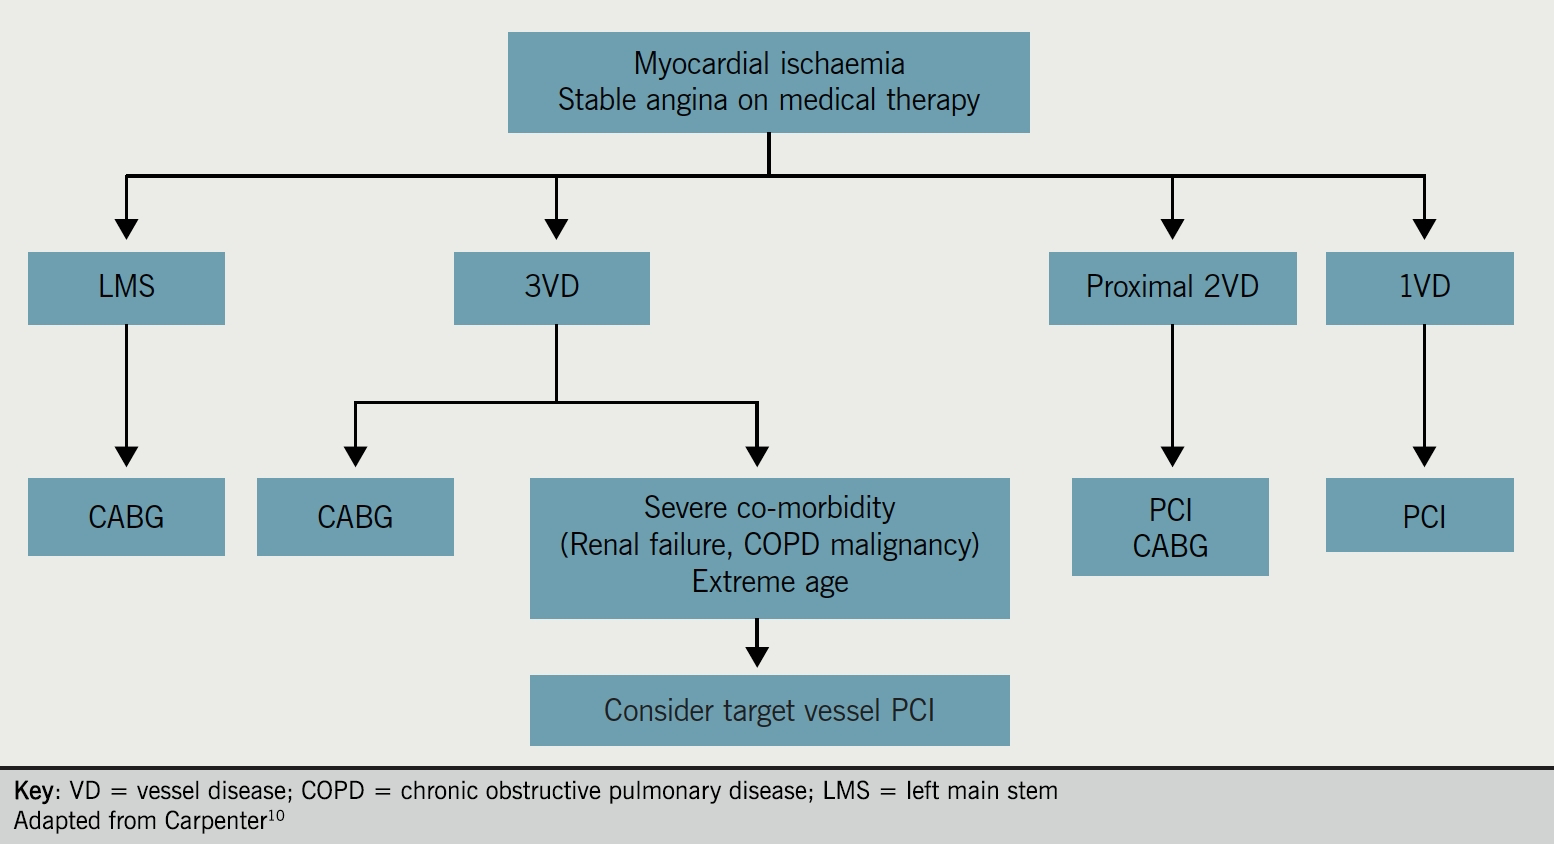 Angina module 7 - revascularisation in stable coronary artery disease: Figure 1. Flow chart of revascularisation strategies in chronic stable angina